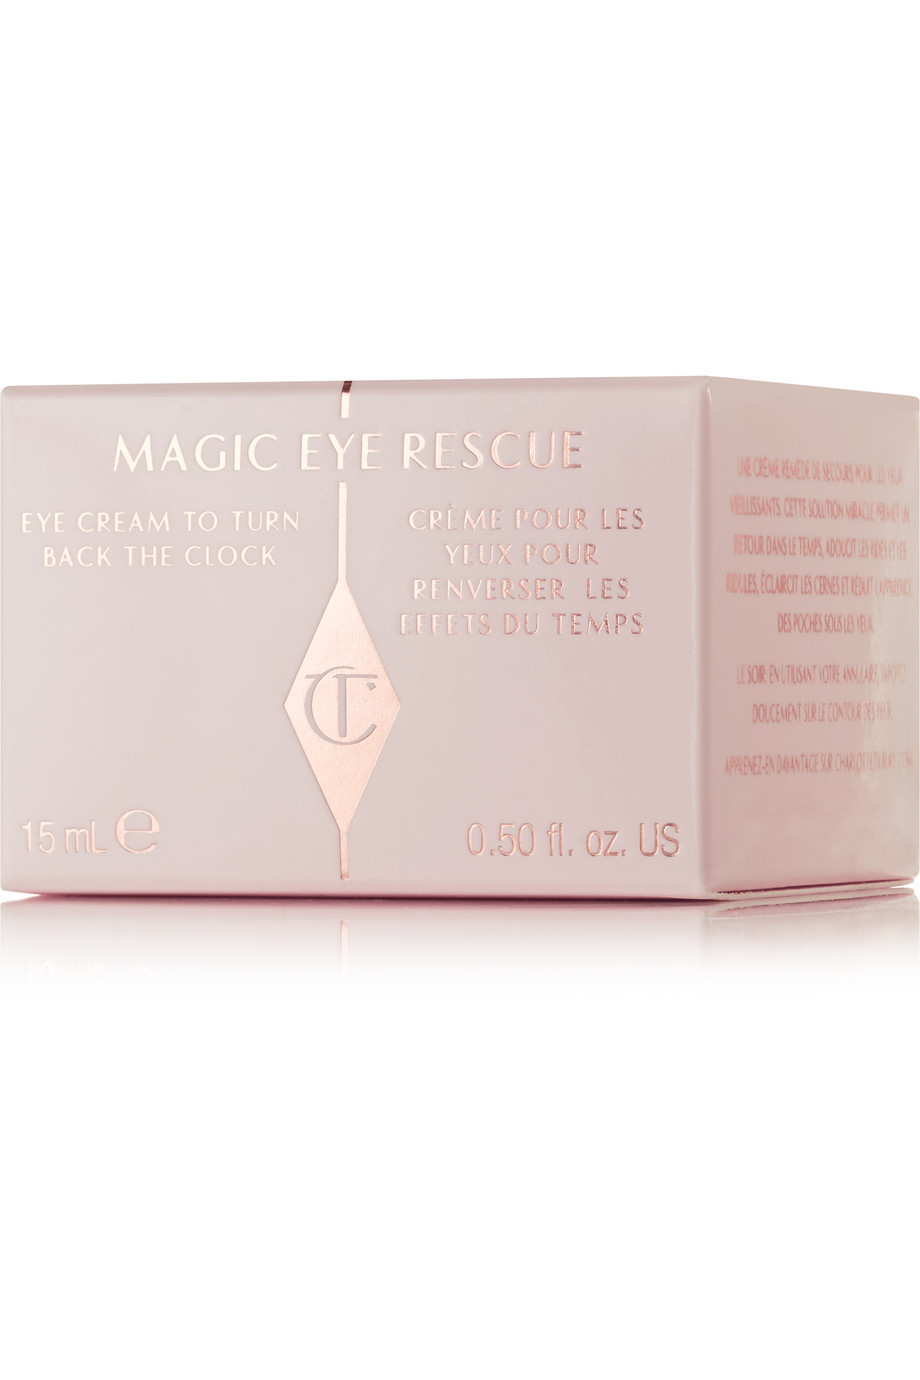 CHARLOTTE TILBURY Magic Eye Rescue, 15ml アイクリーム